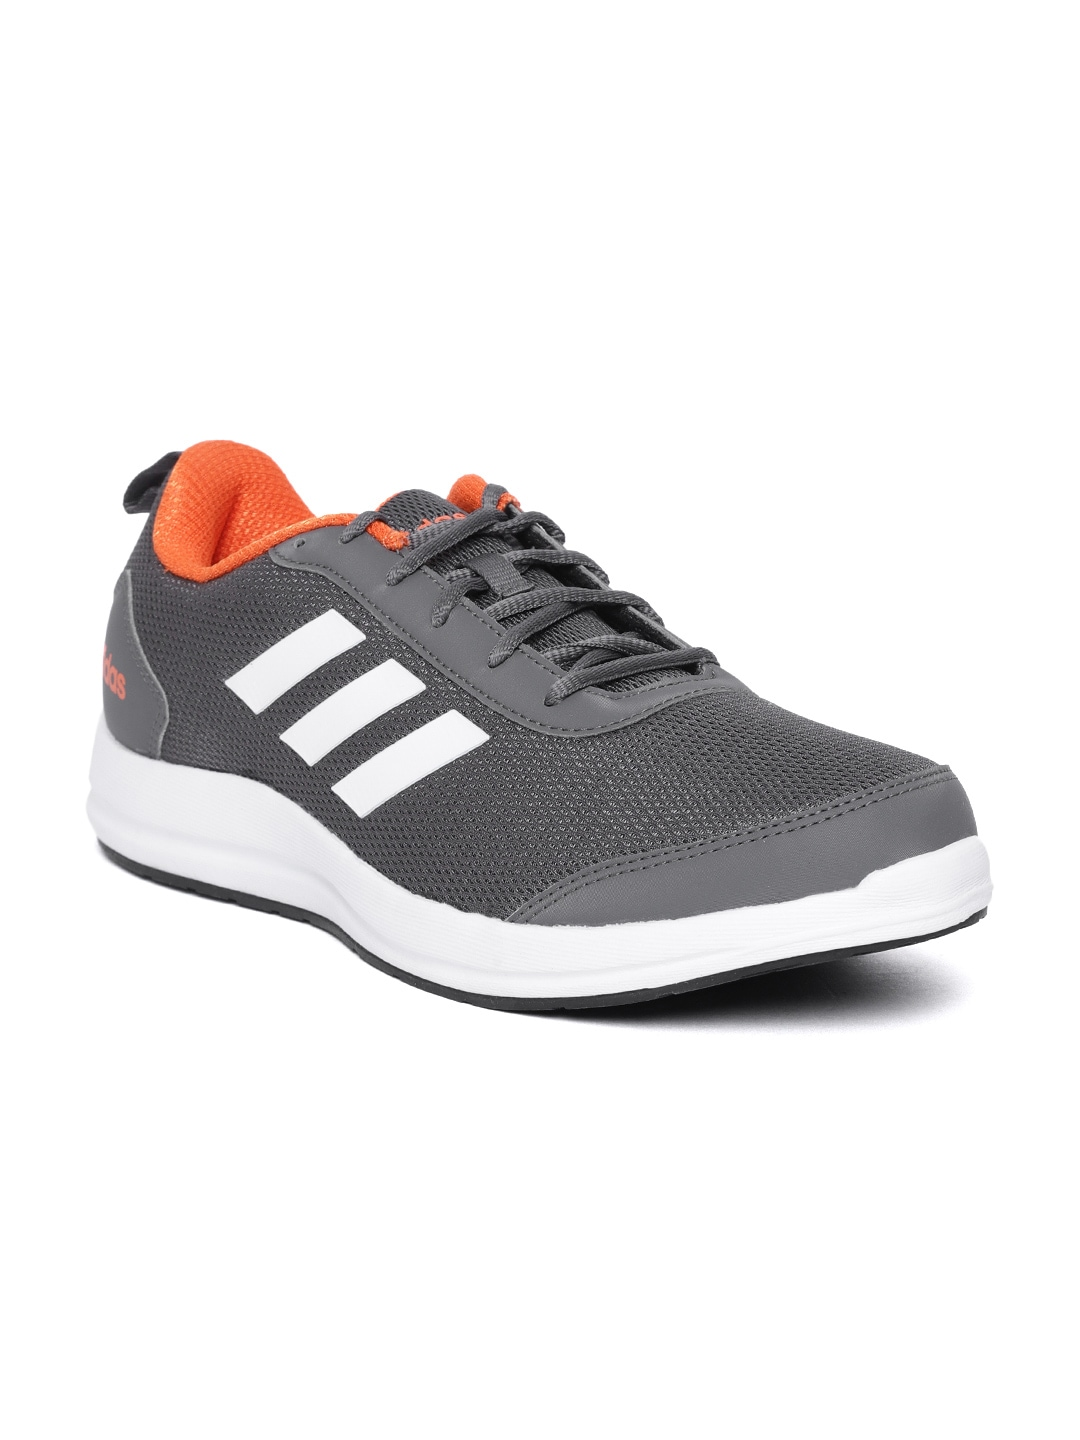 quality design 59760 501c1 Shoes - Buy Shoes for Men, Women  Kids online in India - Myn